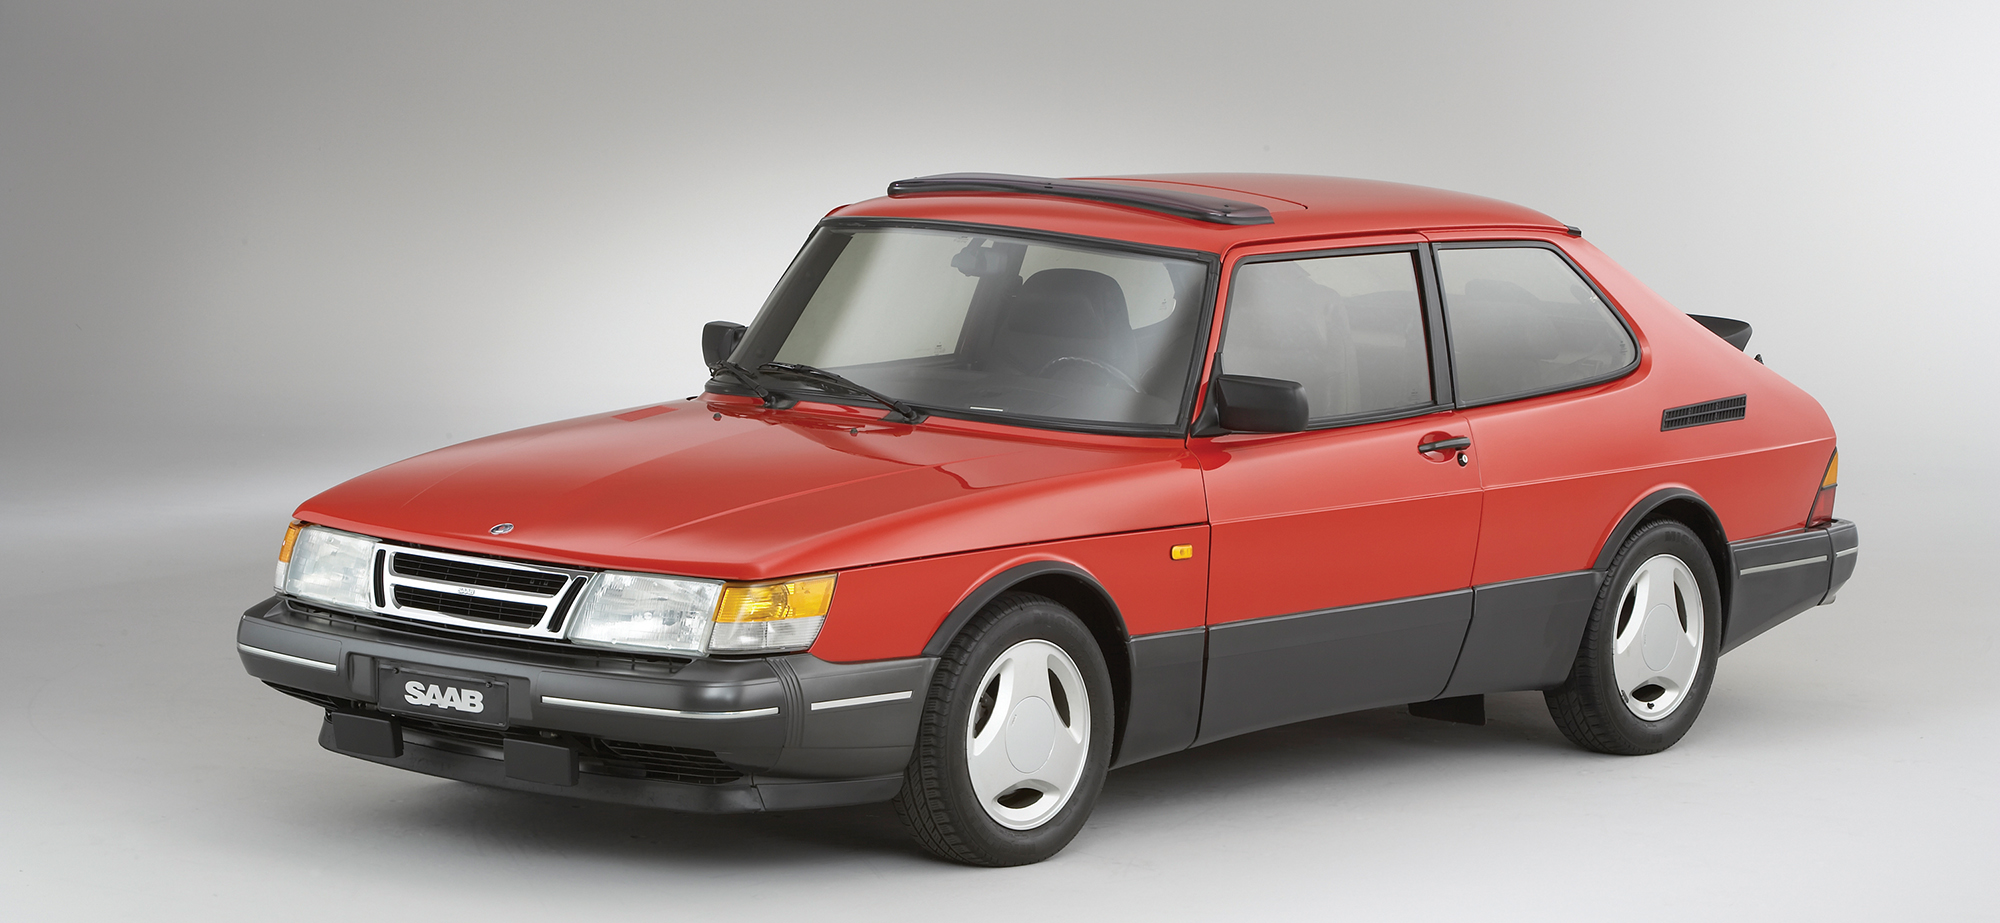 Vintage Views: Saab 900 SPG